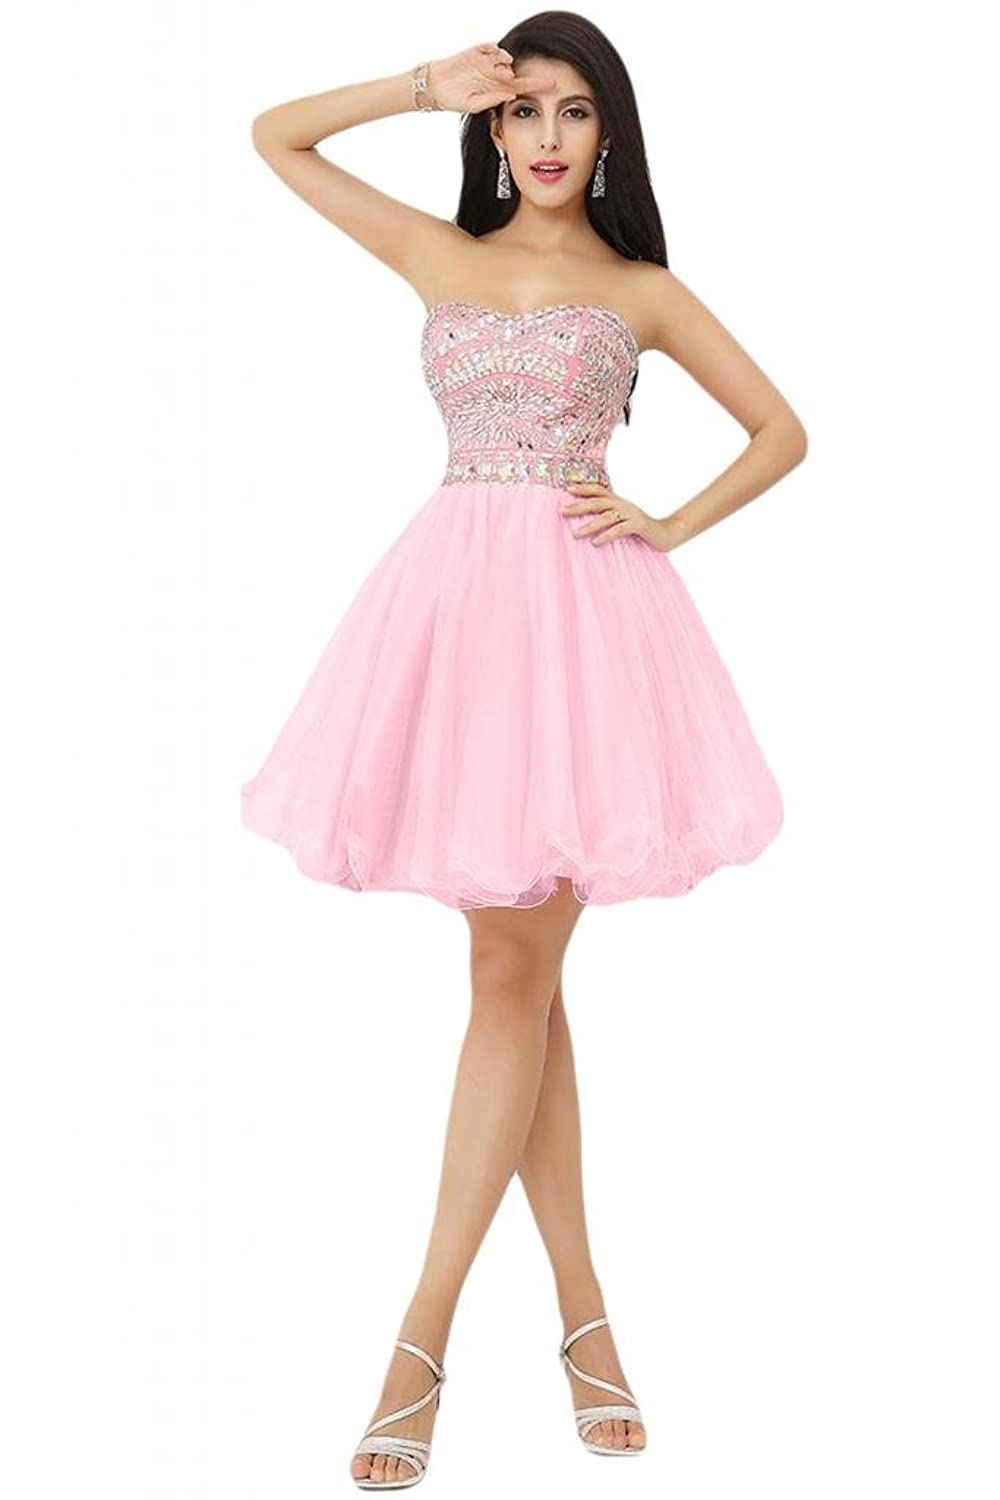 Sunvary 2014 New Pink Cocktail Homecoming Dresses Short Ball Gown Strapless